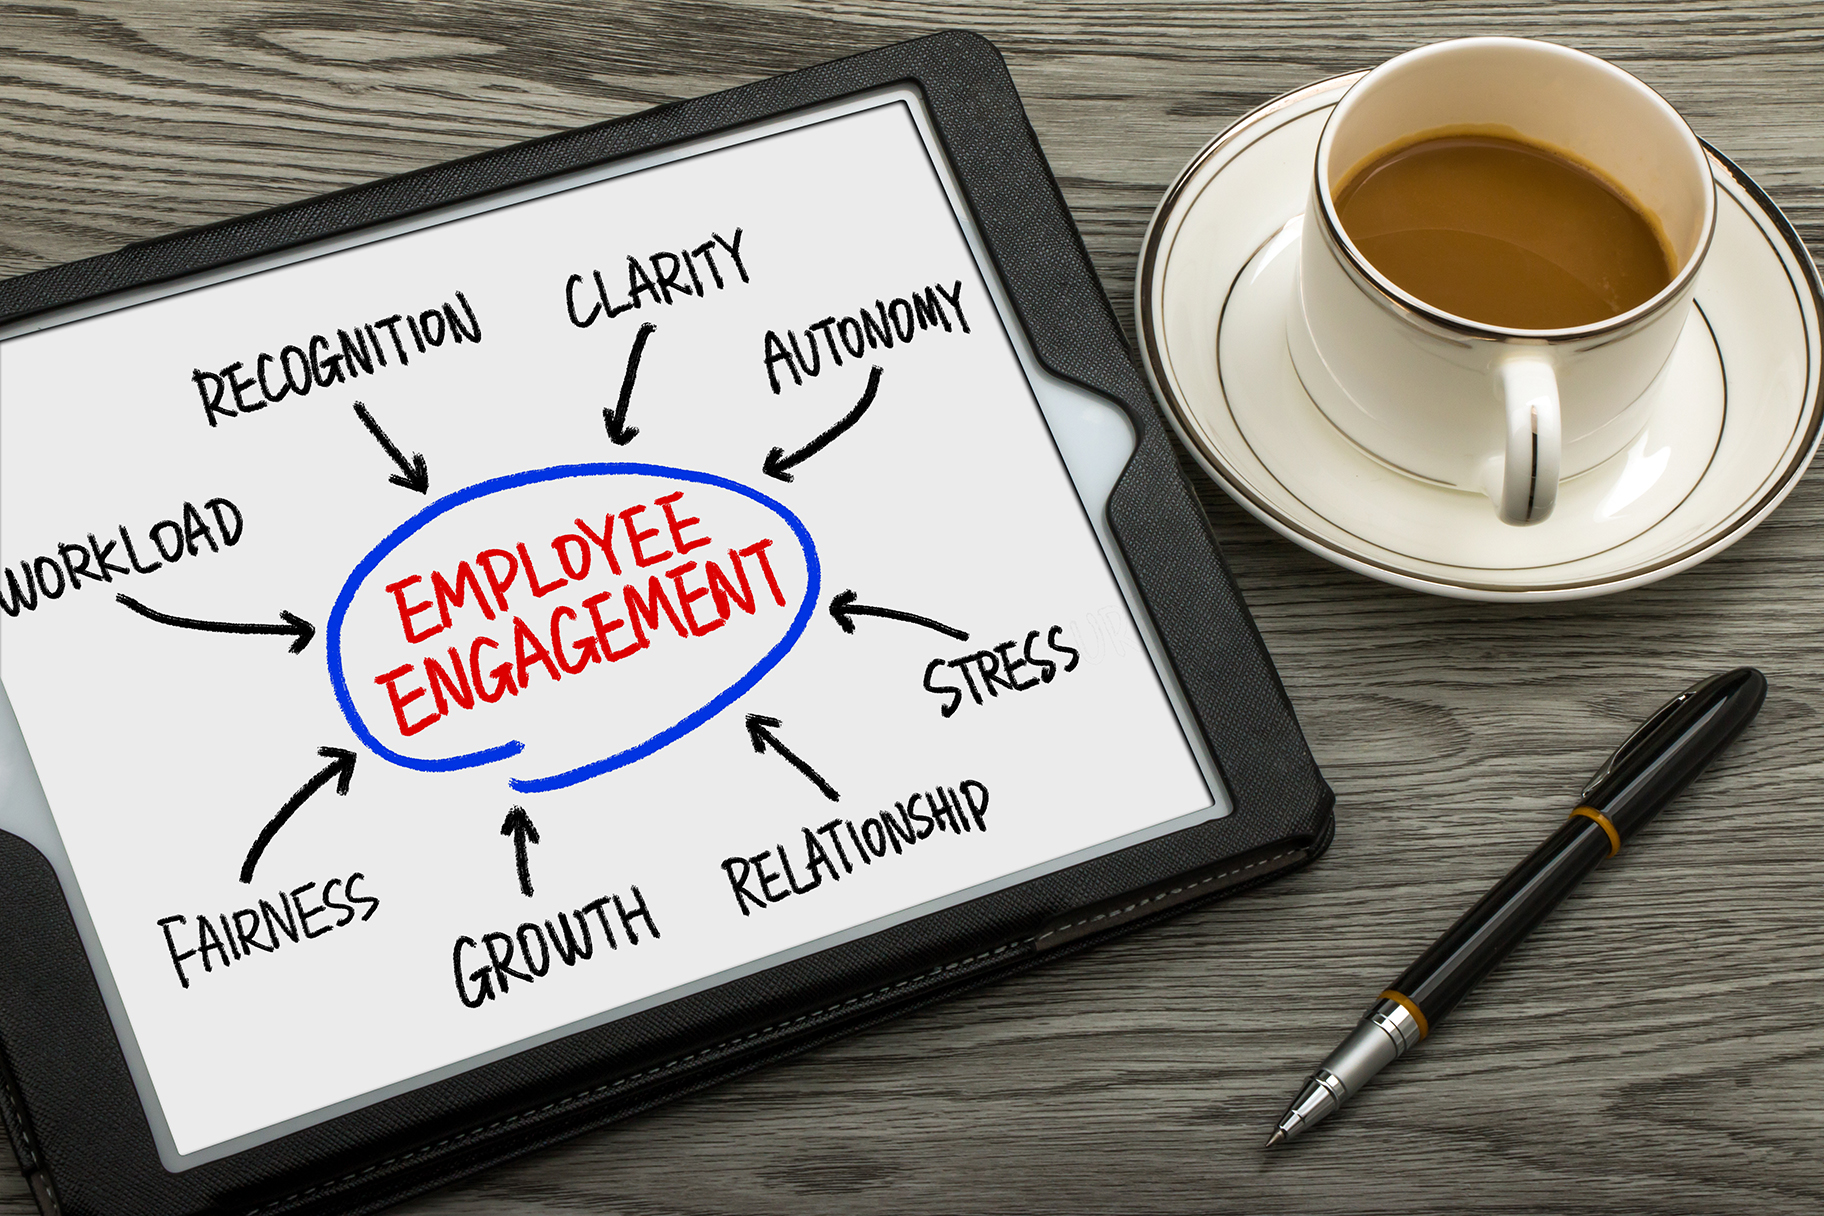 Boost Employee Engagement strategies